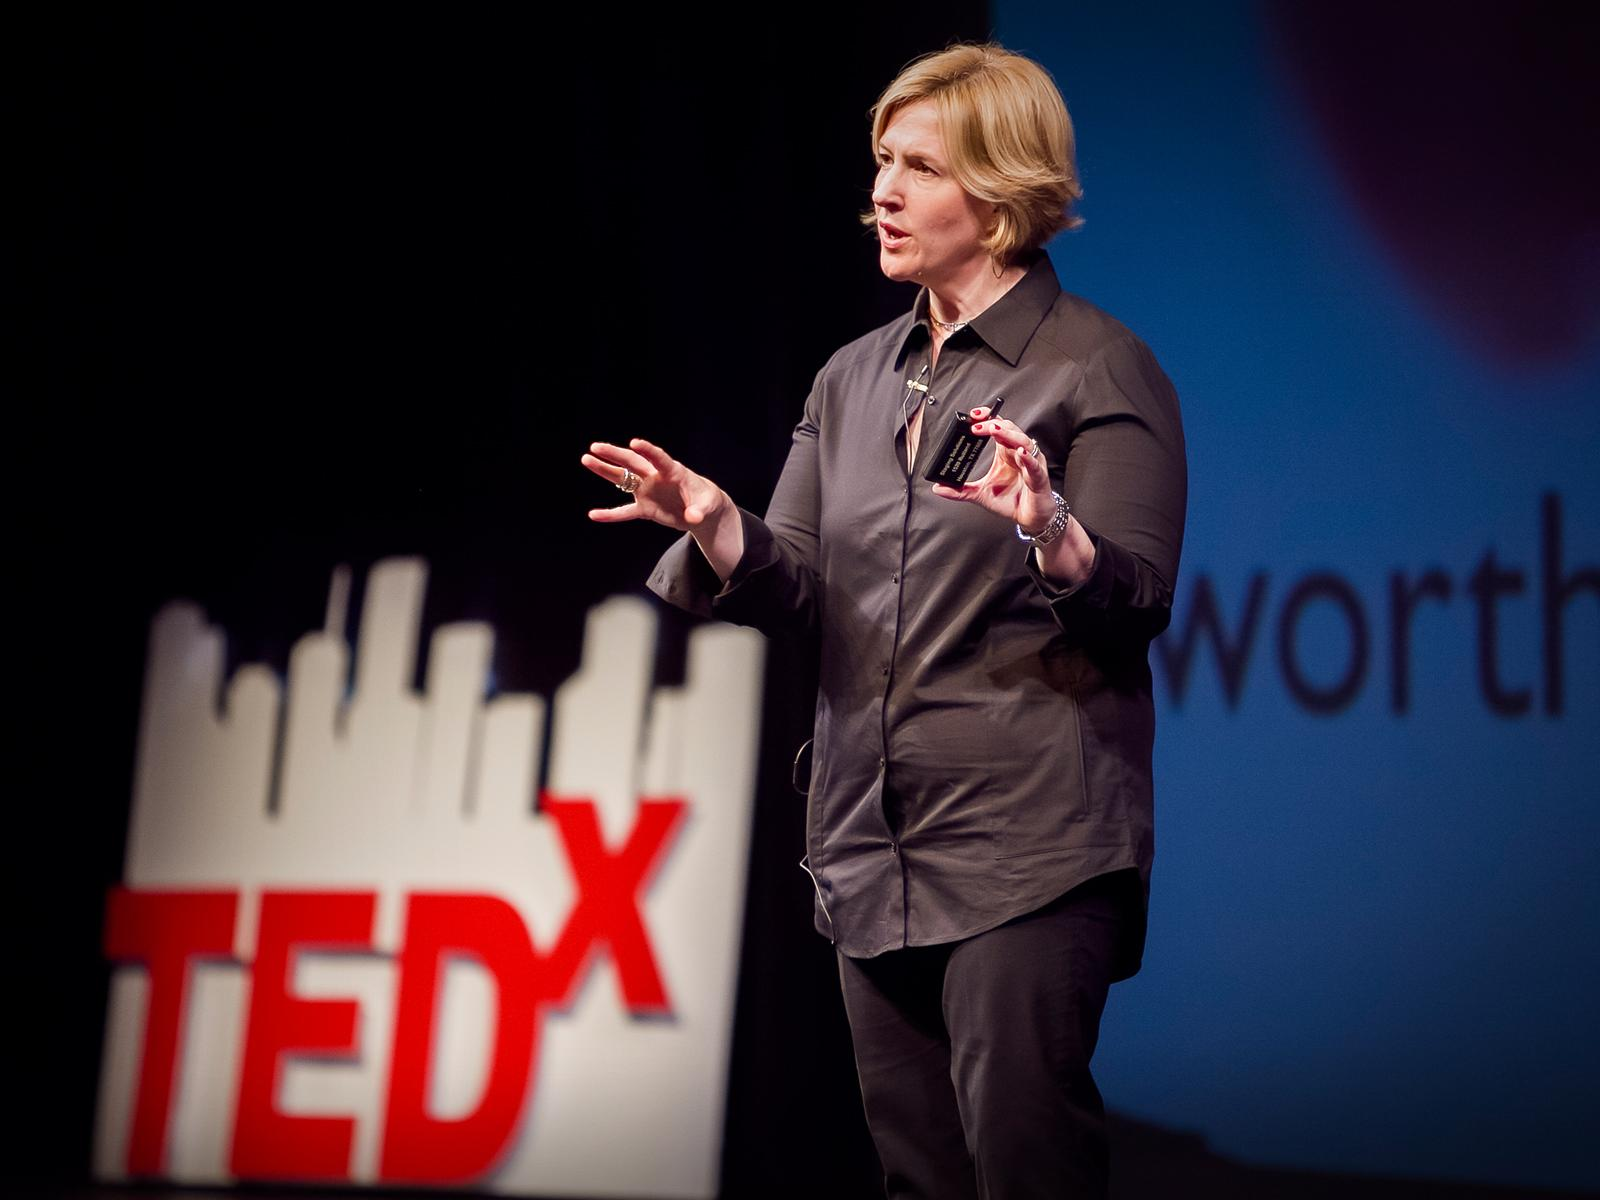 Brené Brown: The power of vulnerability | TED Talk